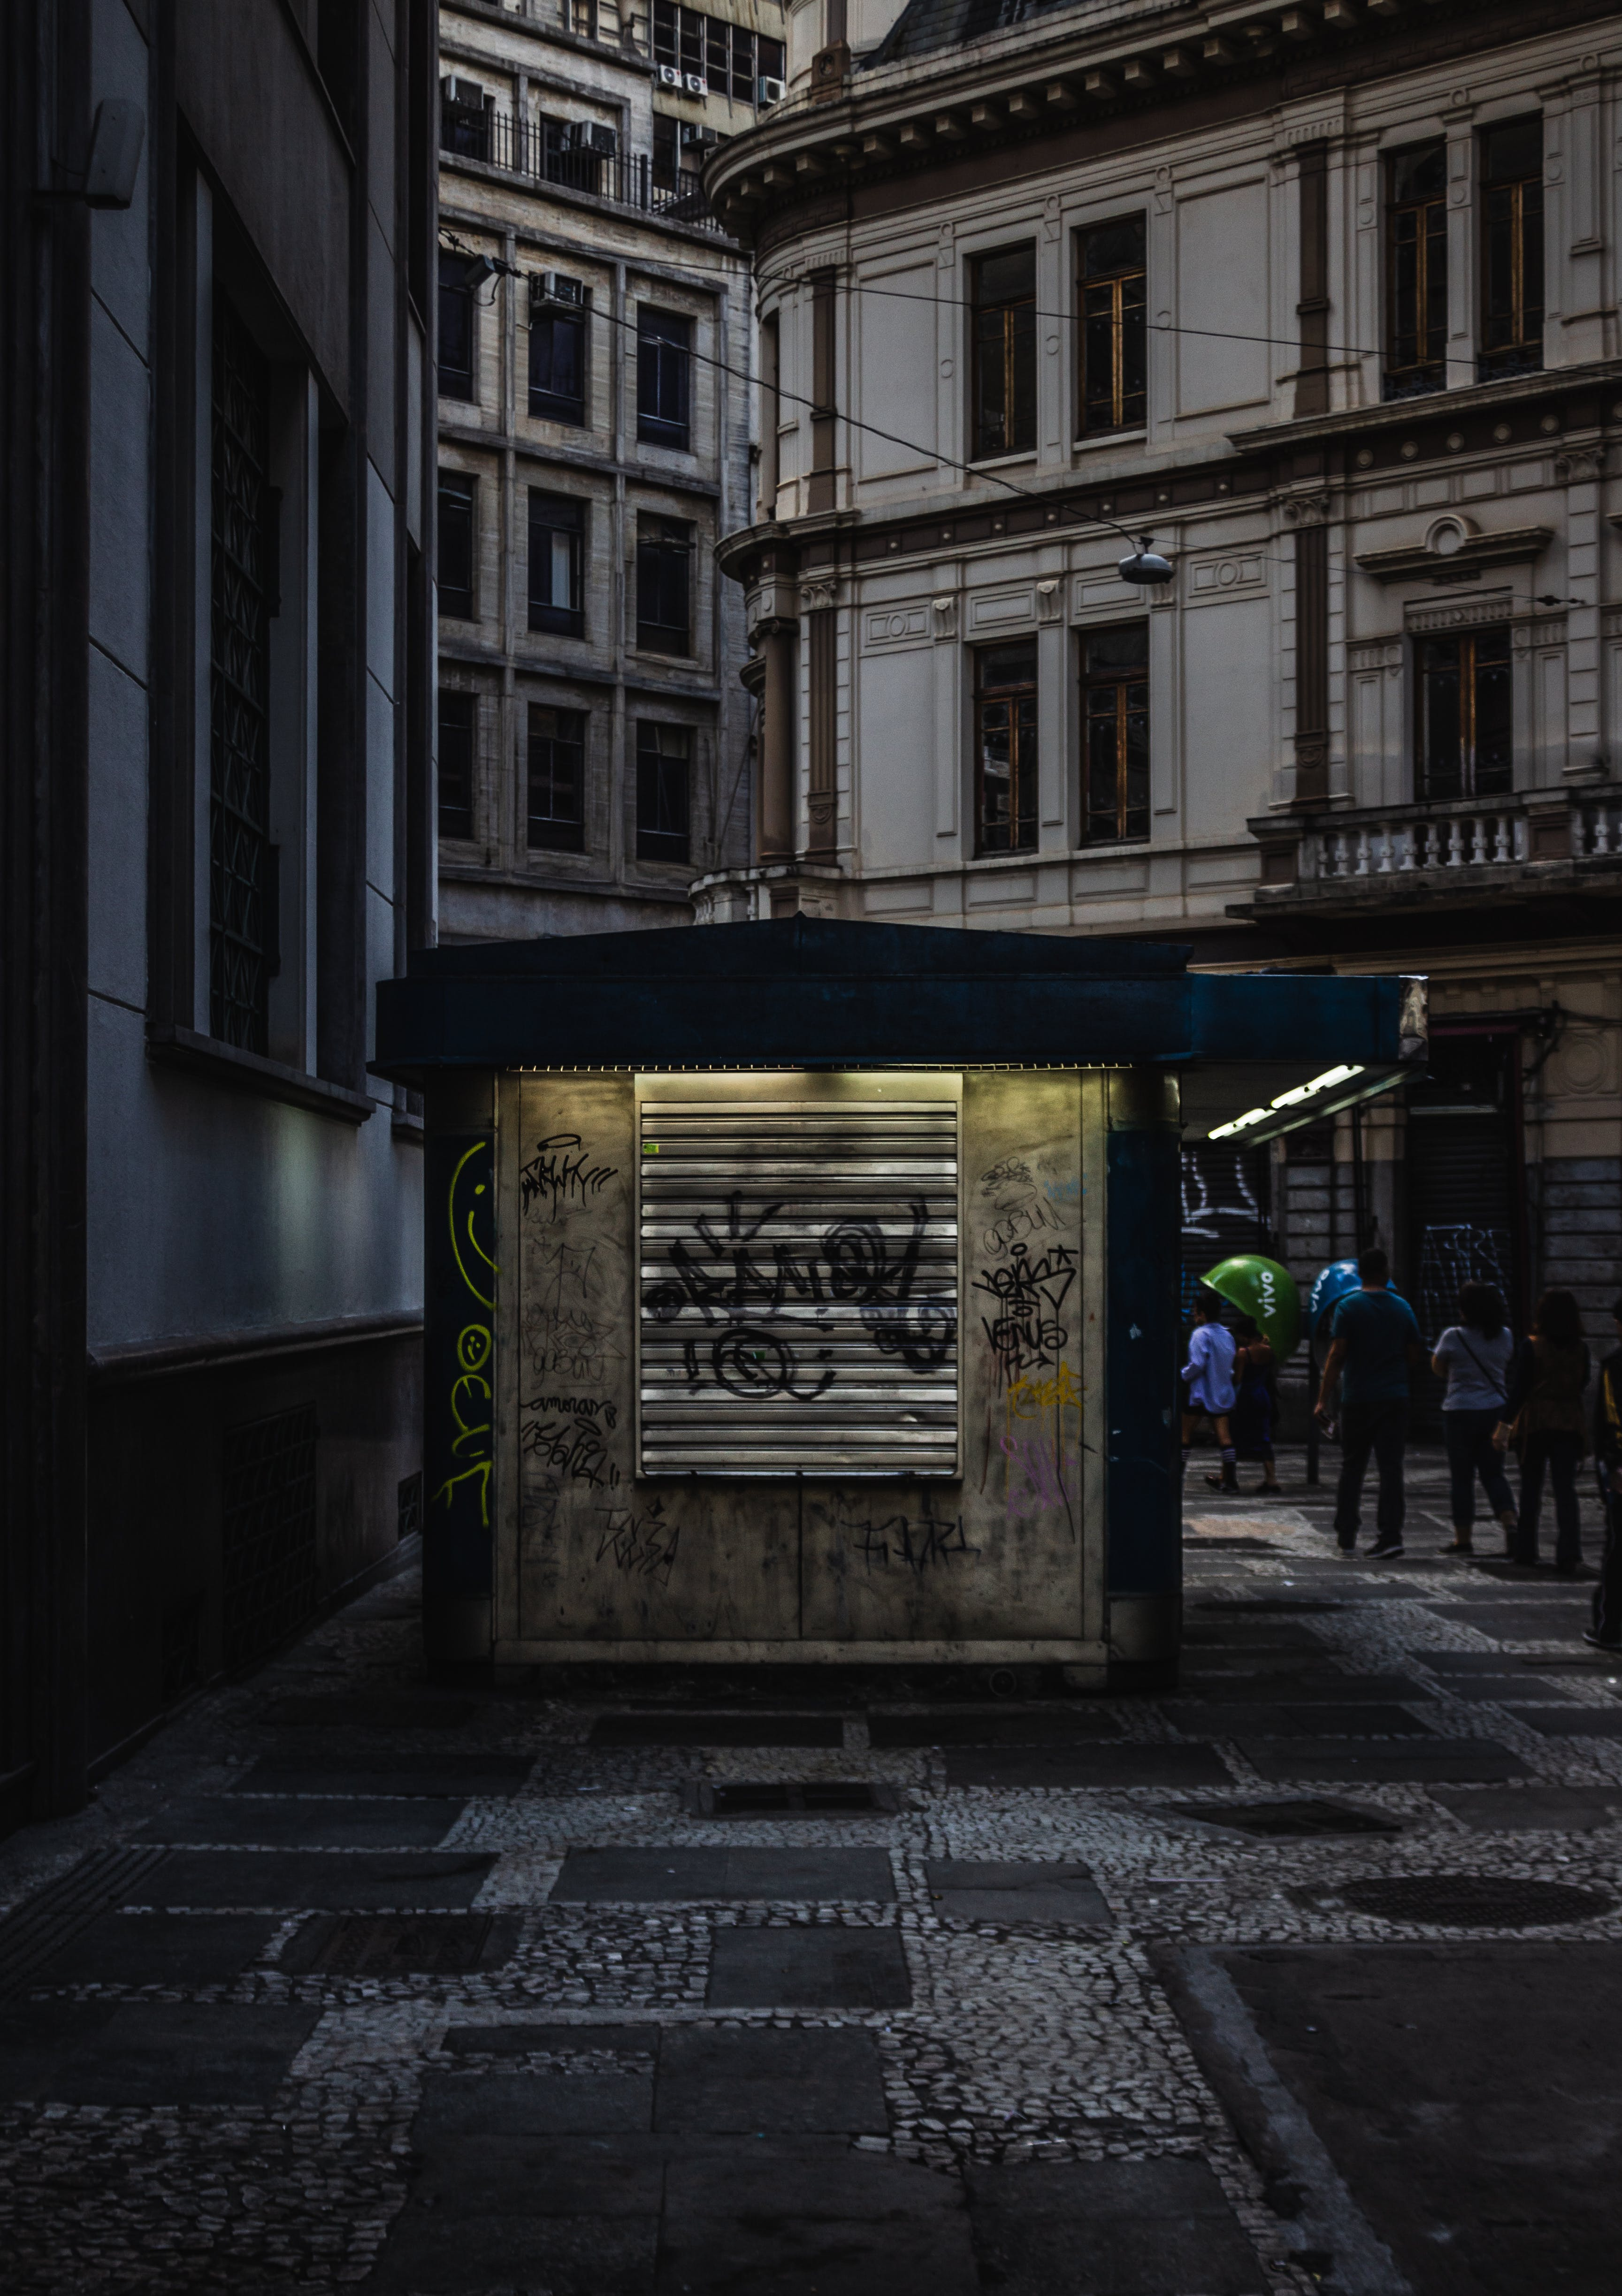 Low Light Photography of People Walking Near Building